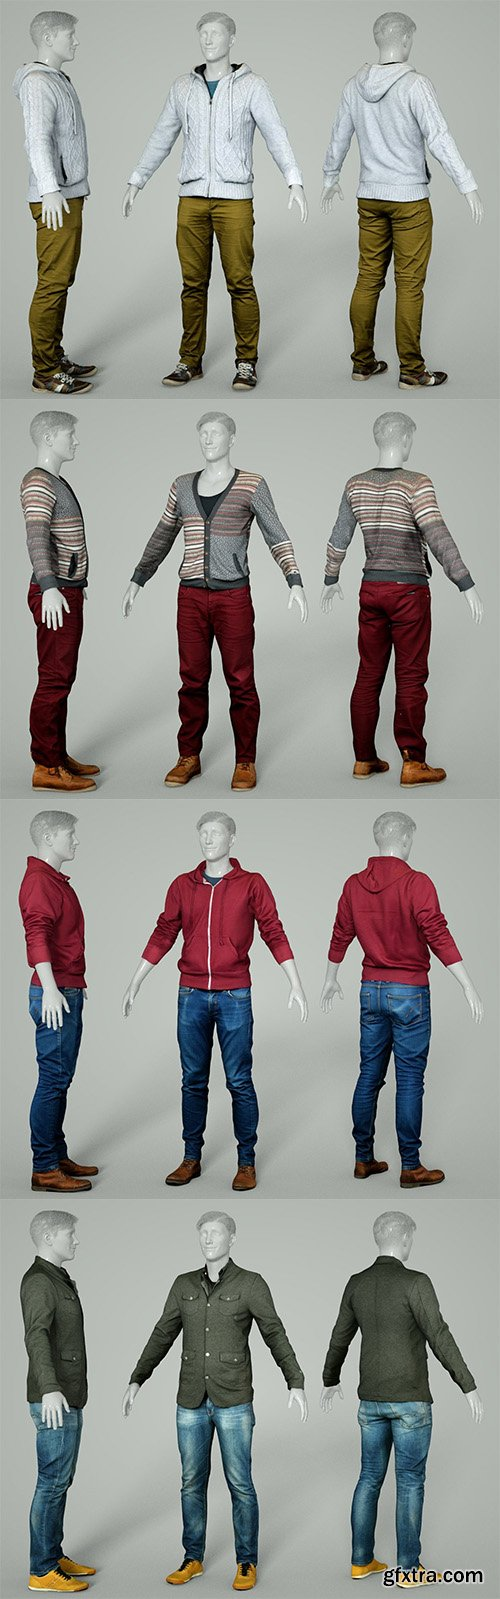 Cubebrush - Male Clothing Collection 1